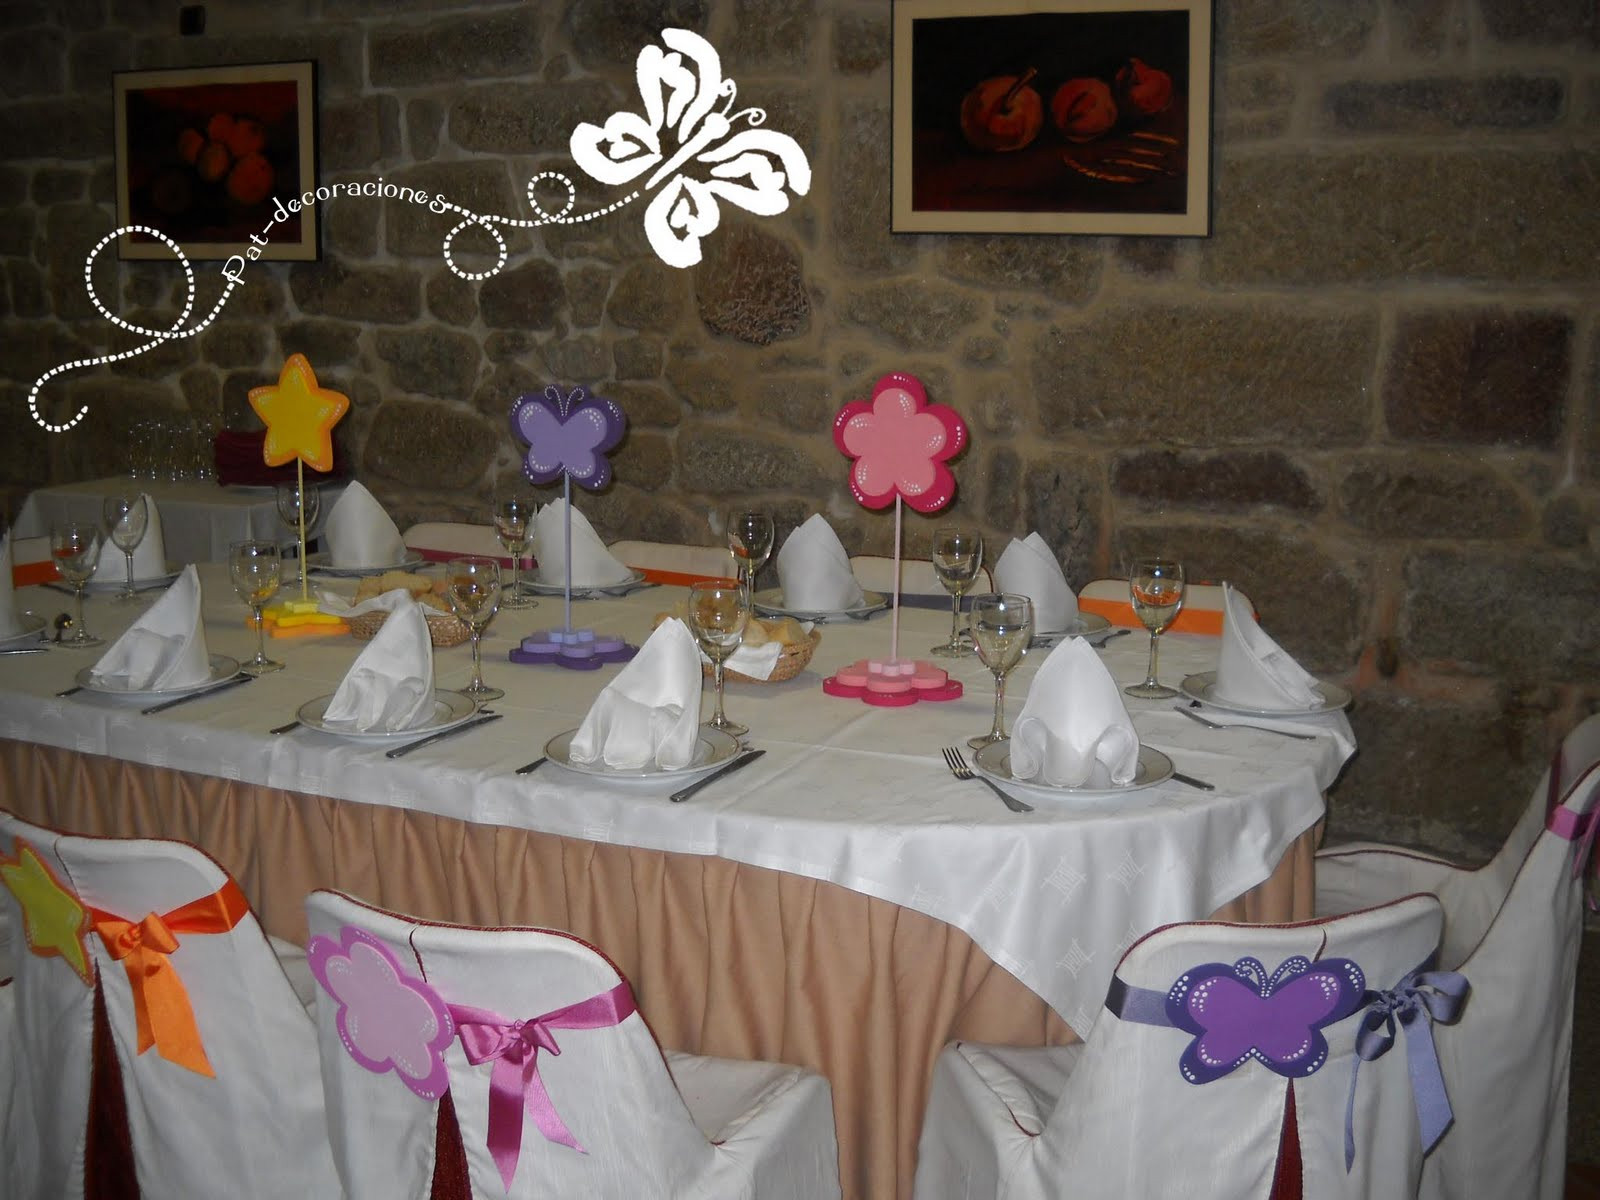 Decoracion Mesas De Comunion Pat Decoraciones 06 01 2011 07 01 2011